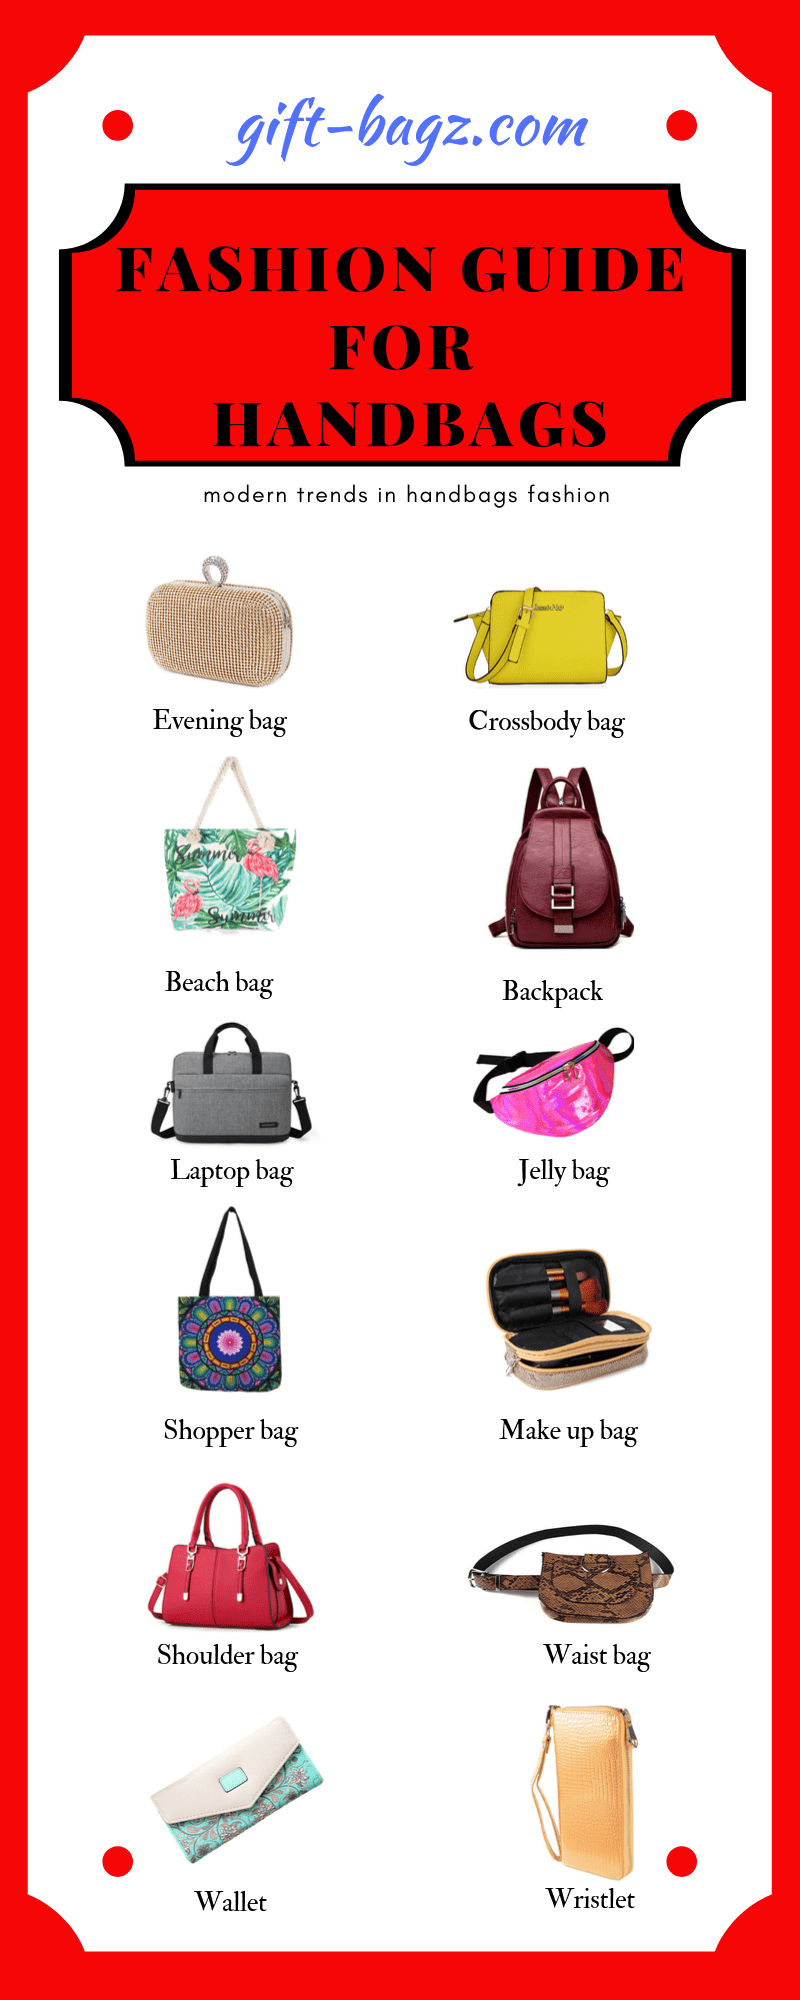 Fashion guide for handbags infographic 1 - Fashion guide for trending handbags